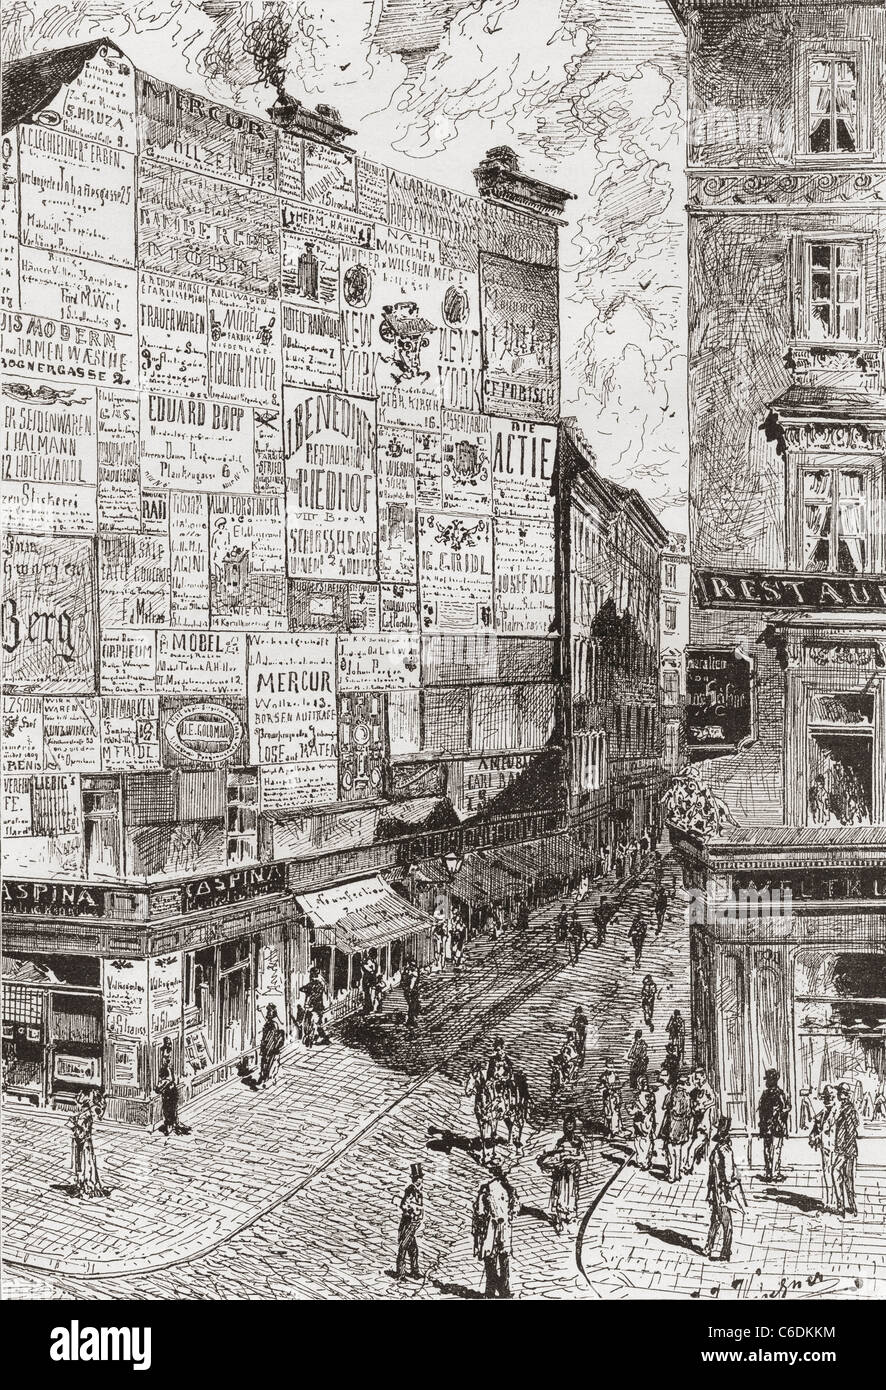 A wall of advertisements on a street in Vienna, Austria in the 19th century. - Stock Image